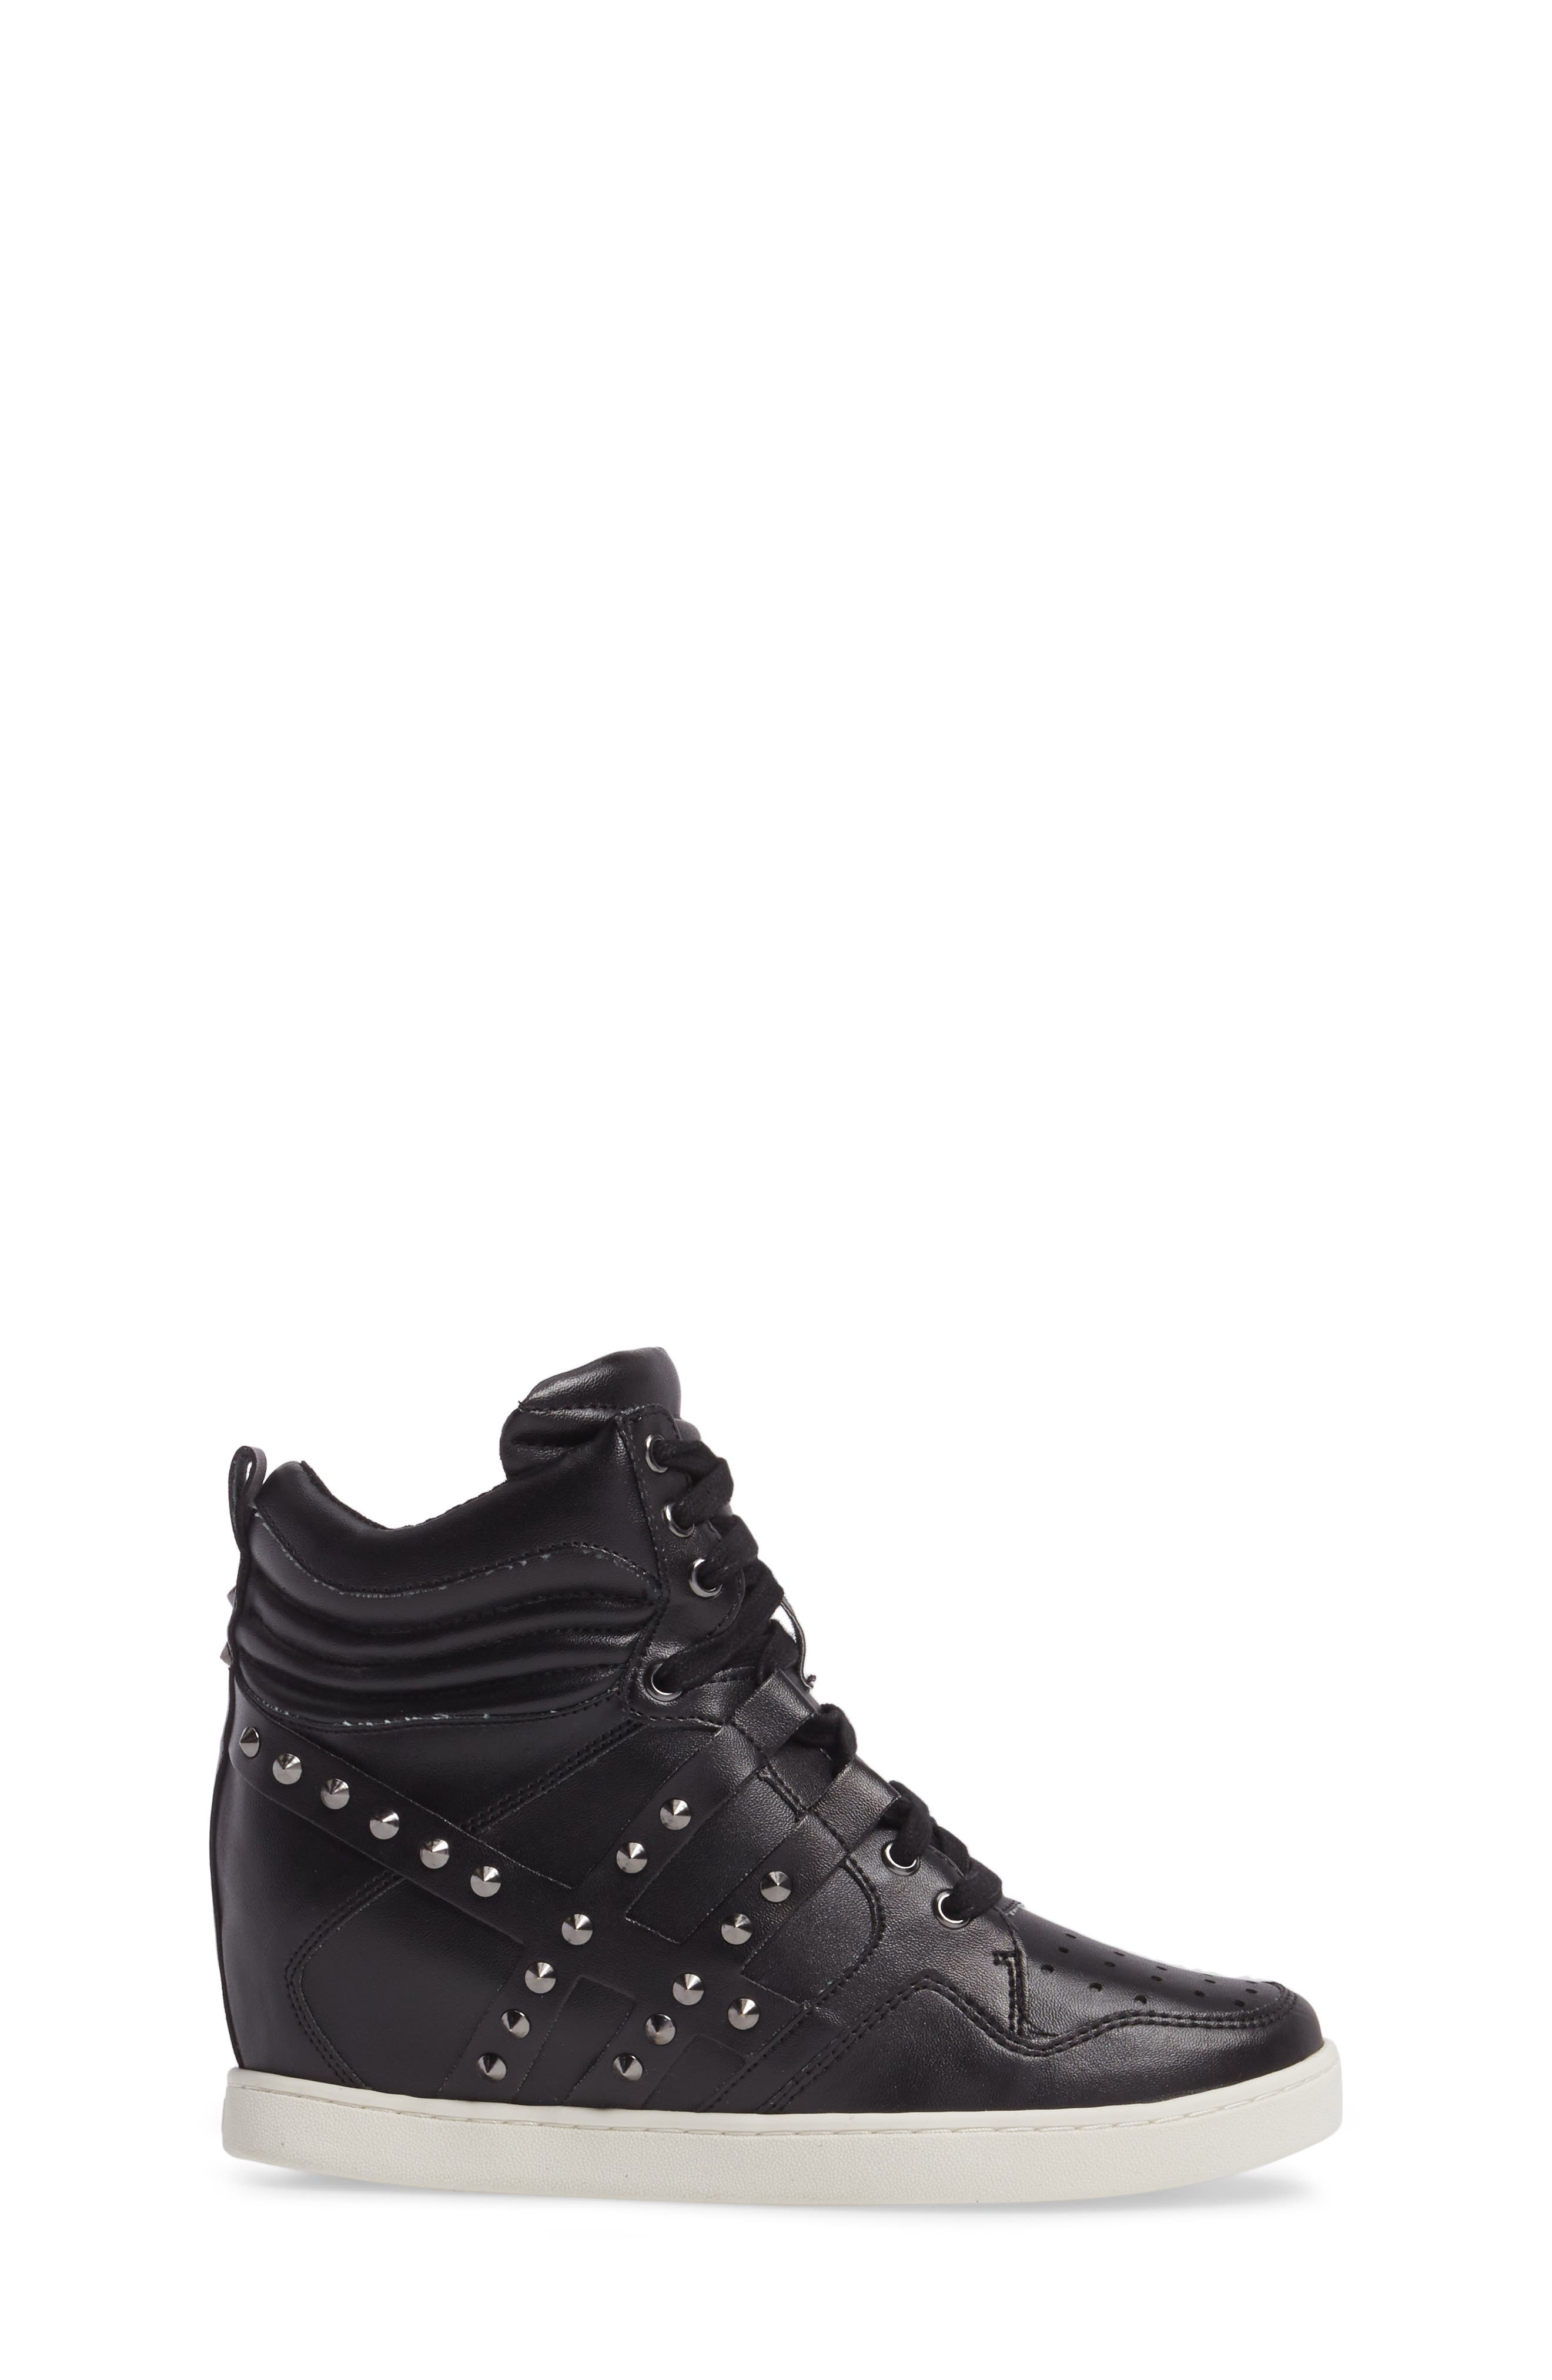 Boogie Chic Studded High Top Sneaker,                             Alternate thumbnail 3, color,                             Black Faux Leather